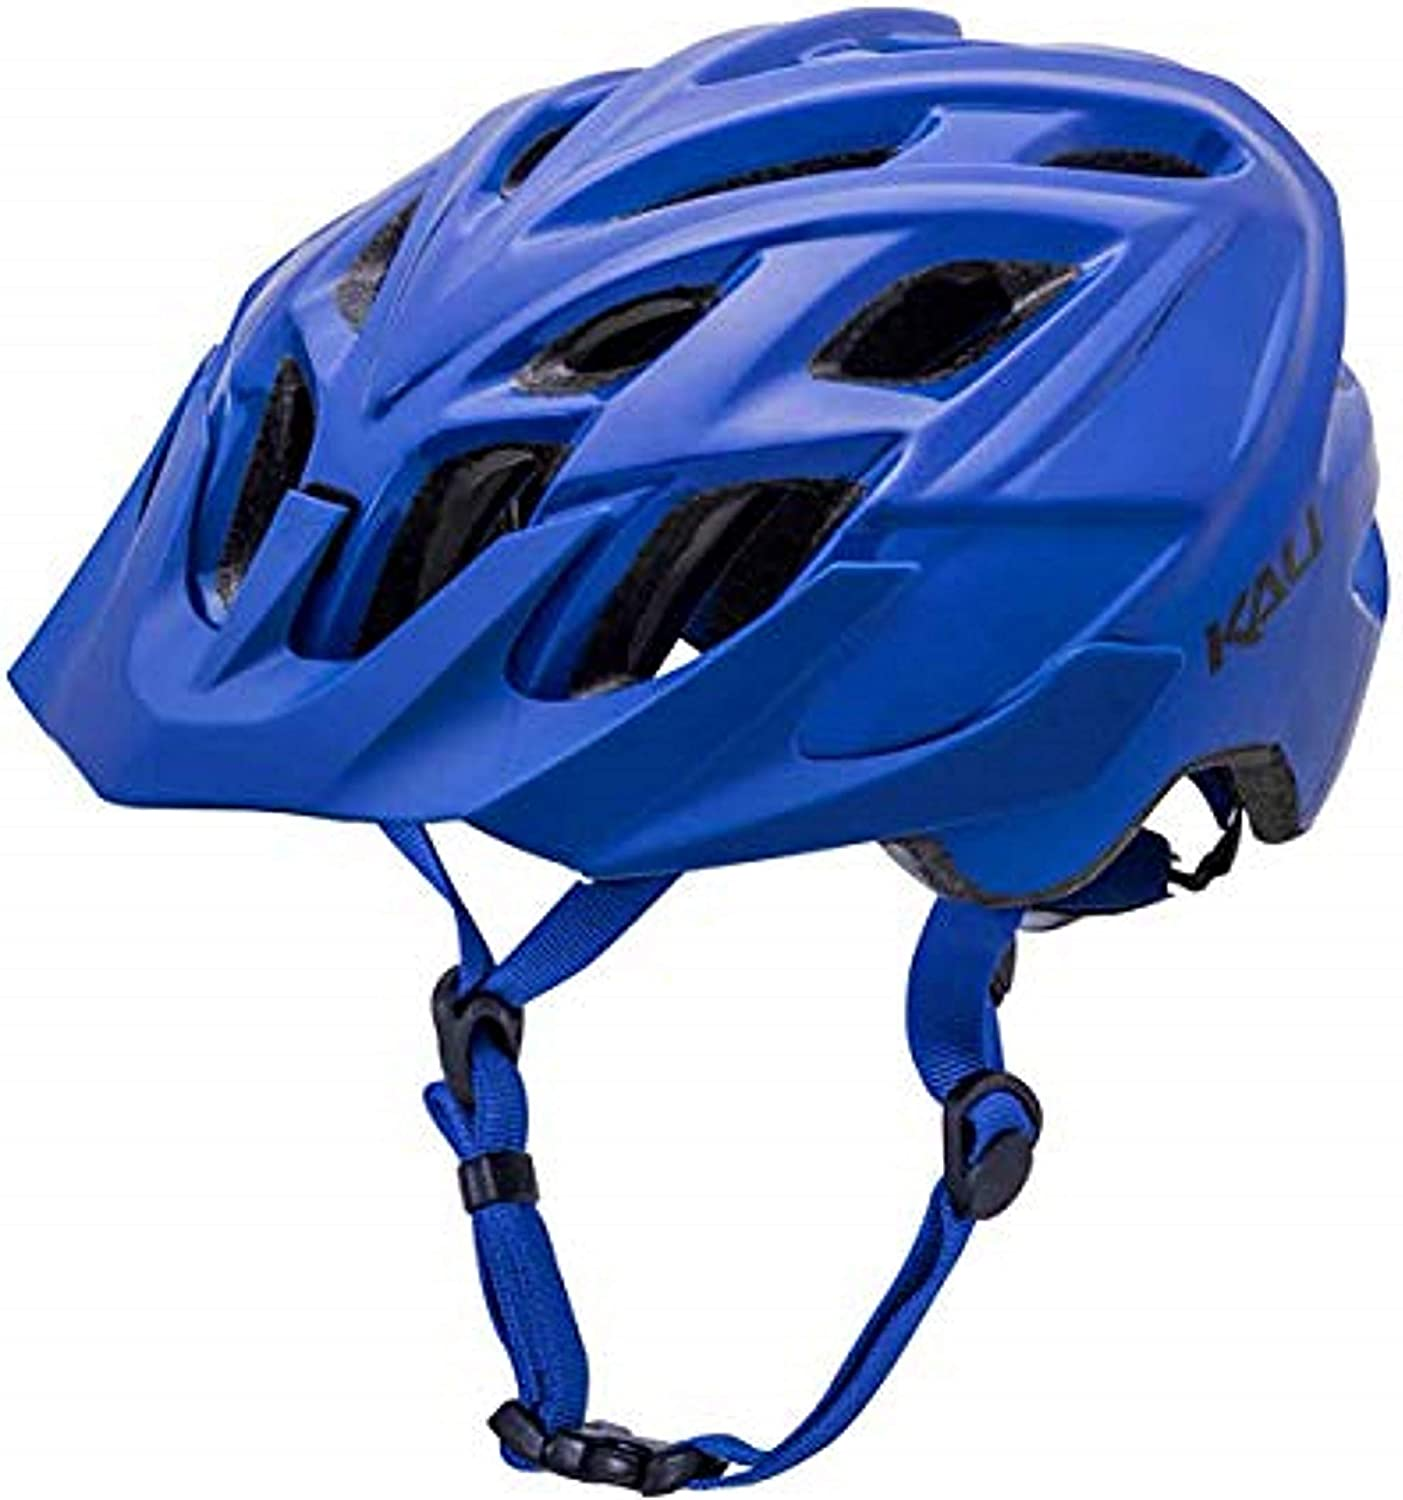 Kali Protectives Chakra Solo Half Helmet Size Cycling Blu Max 70% OFF Solid Sale price